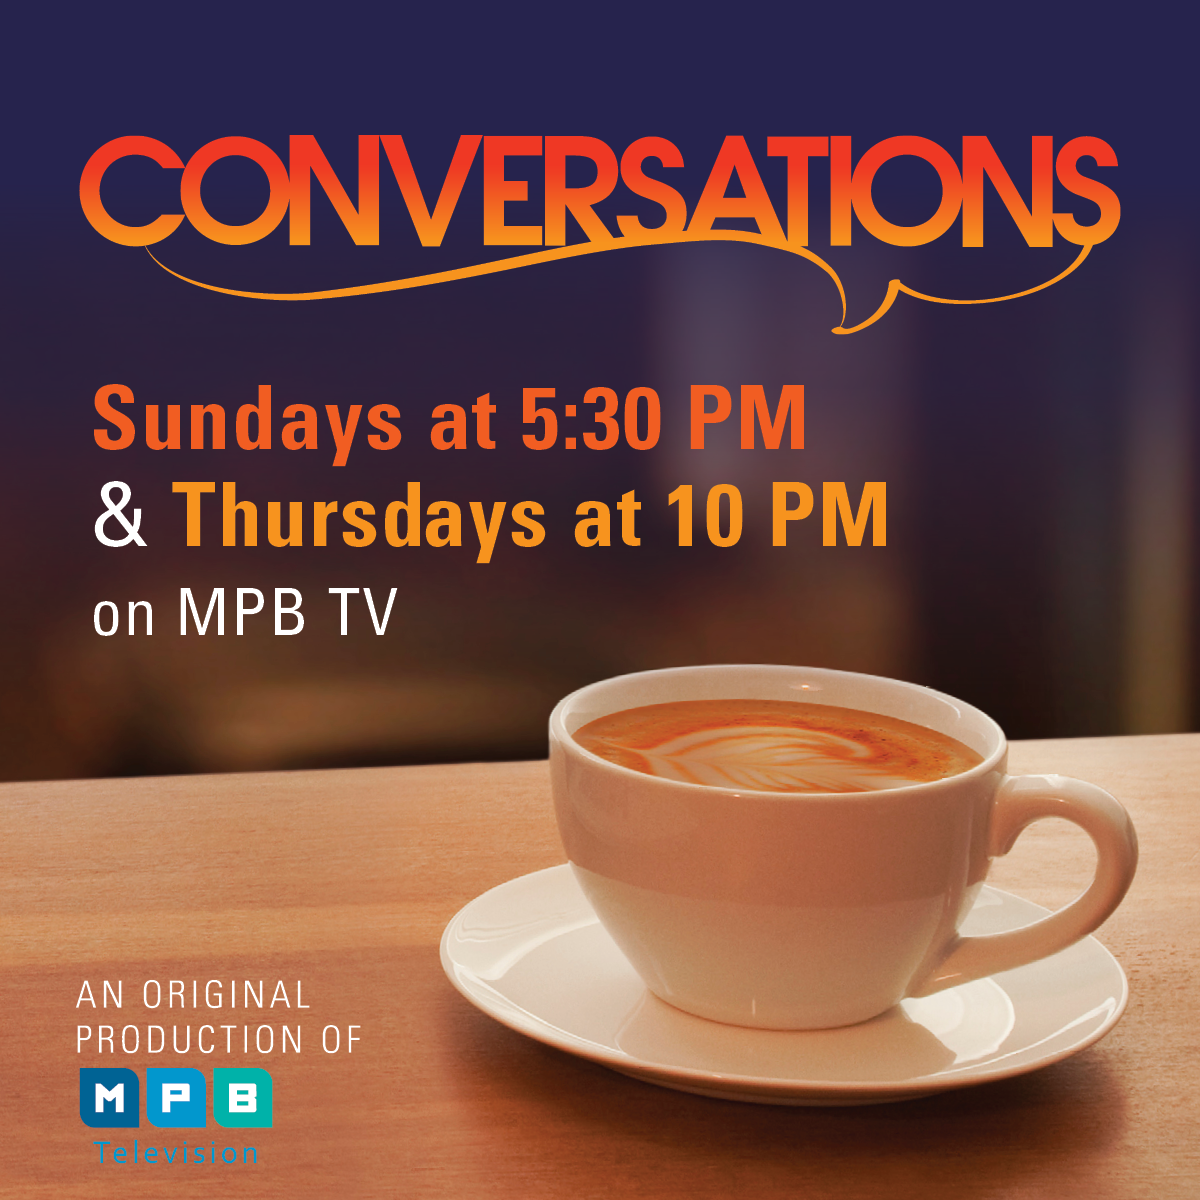 Watch new episodes of Conversations, Sundays, at 5:30 PM on MPB TV.